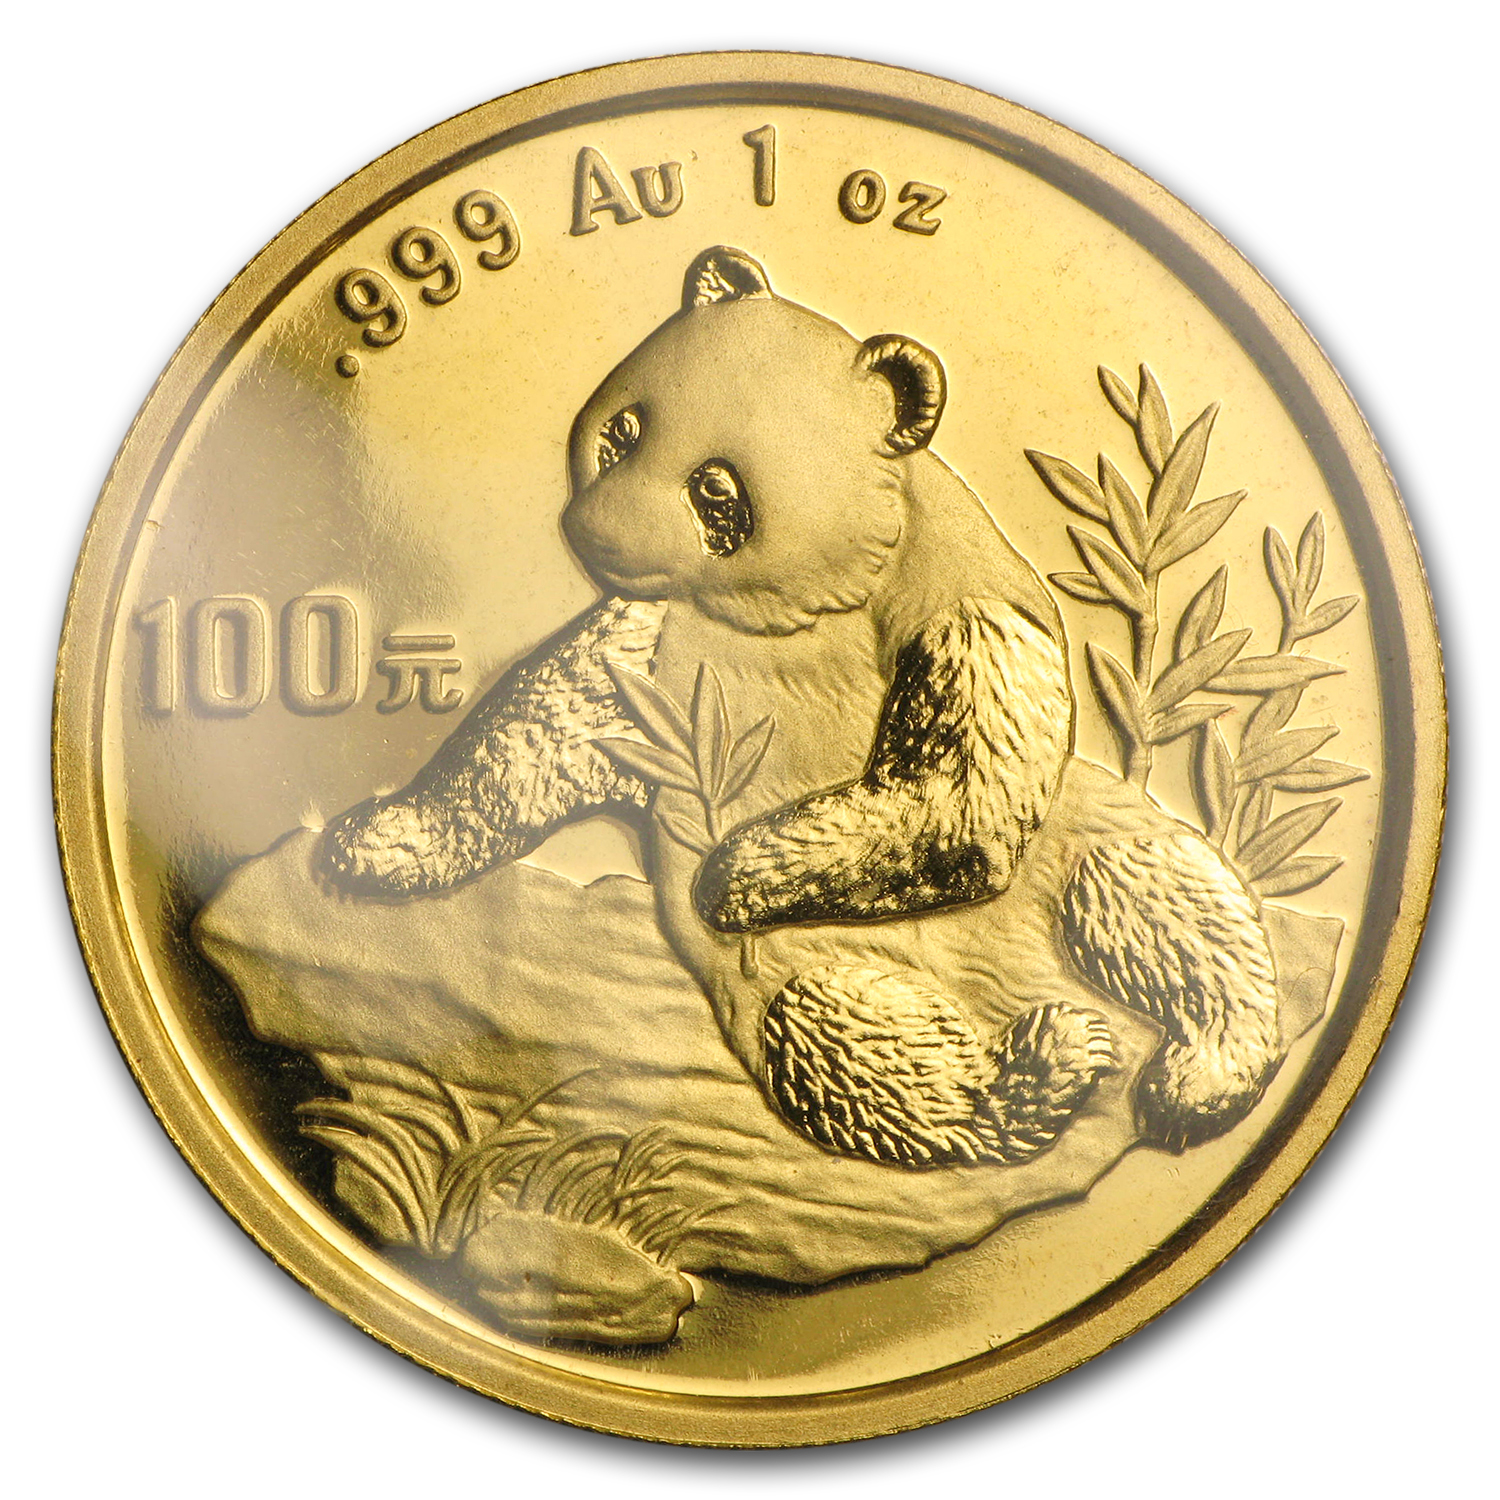 1998 1 oz Gold Chinese Panda Small Date BU (Sealed)